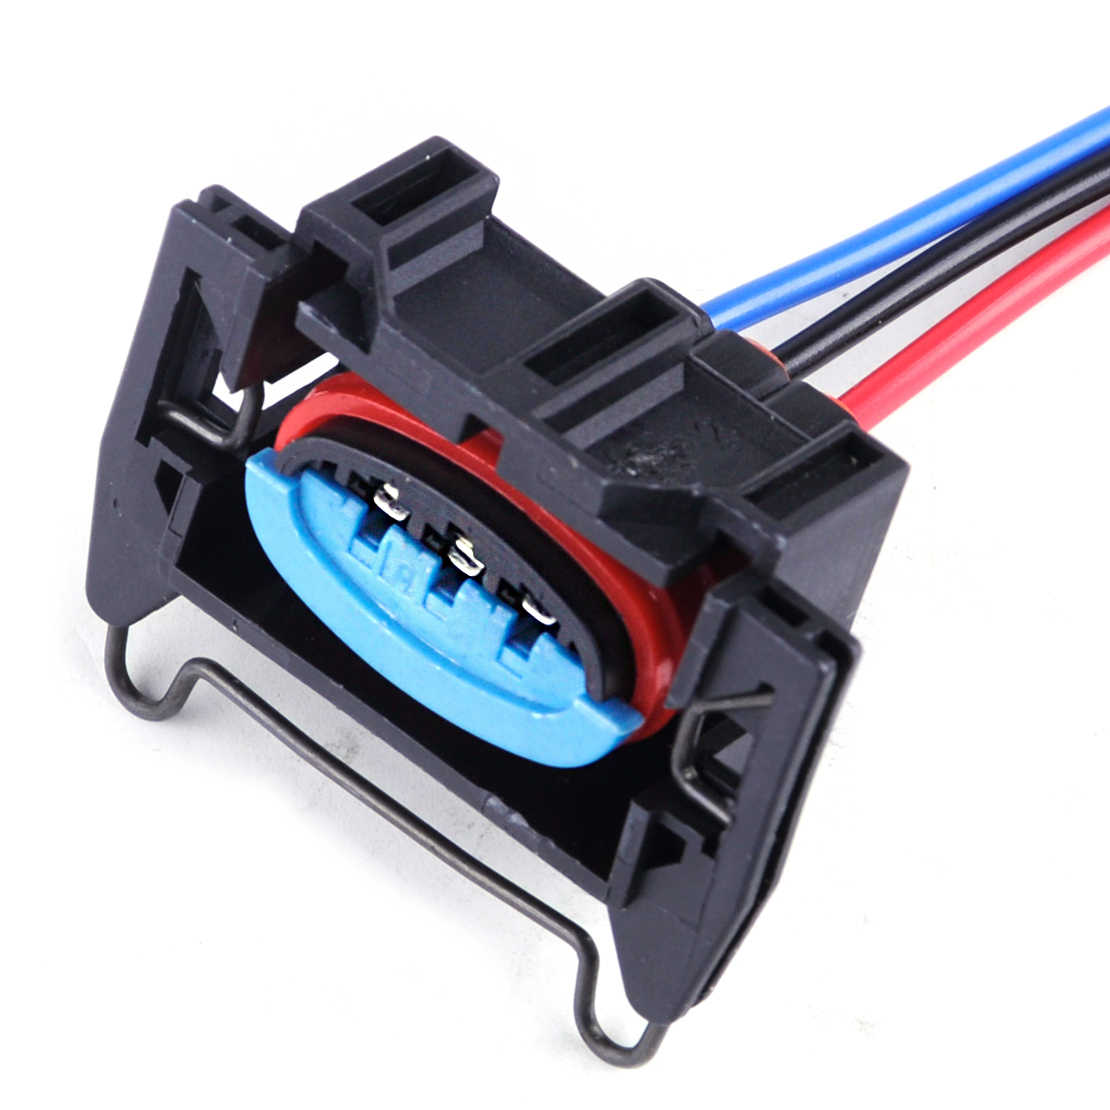 medium resolution of  beler ignition coil pack wiring harness connector fit for ford mazda 645 302 3u2z14s411tna 1p1727